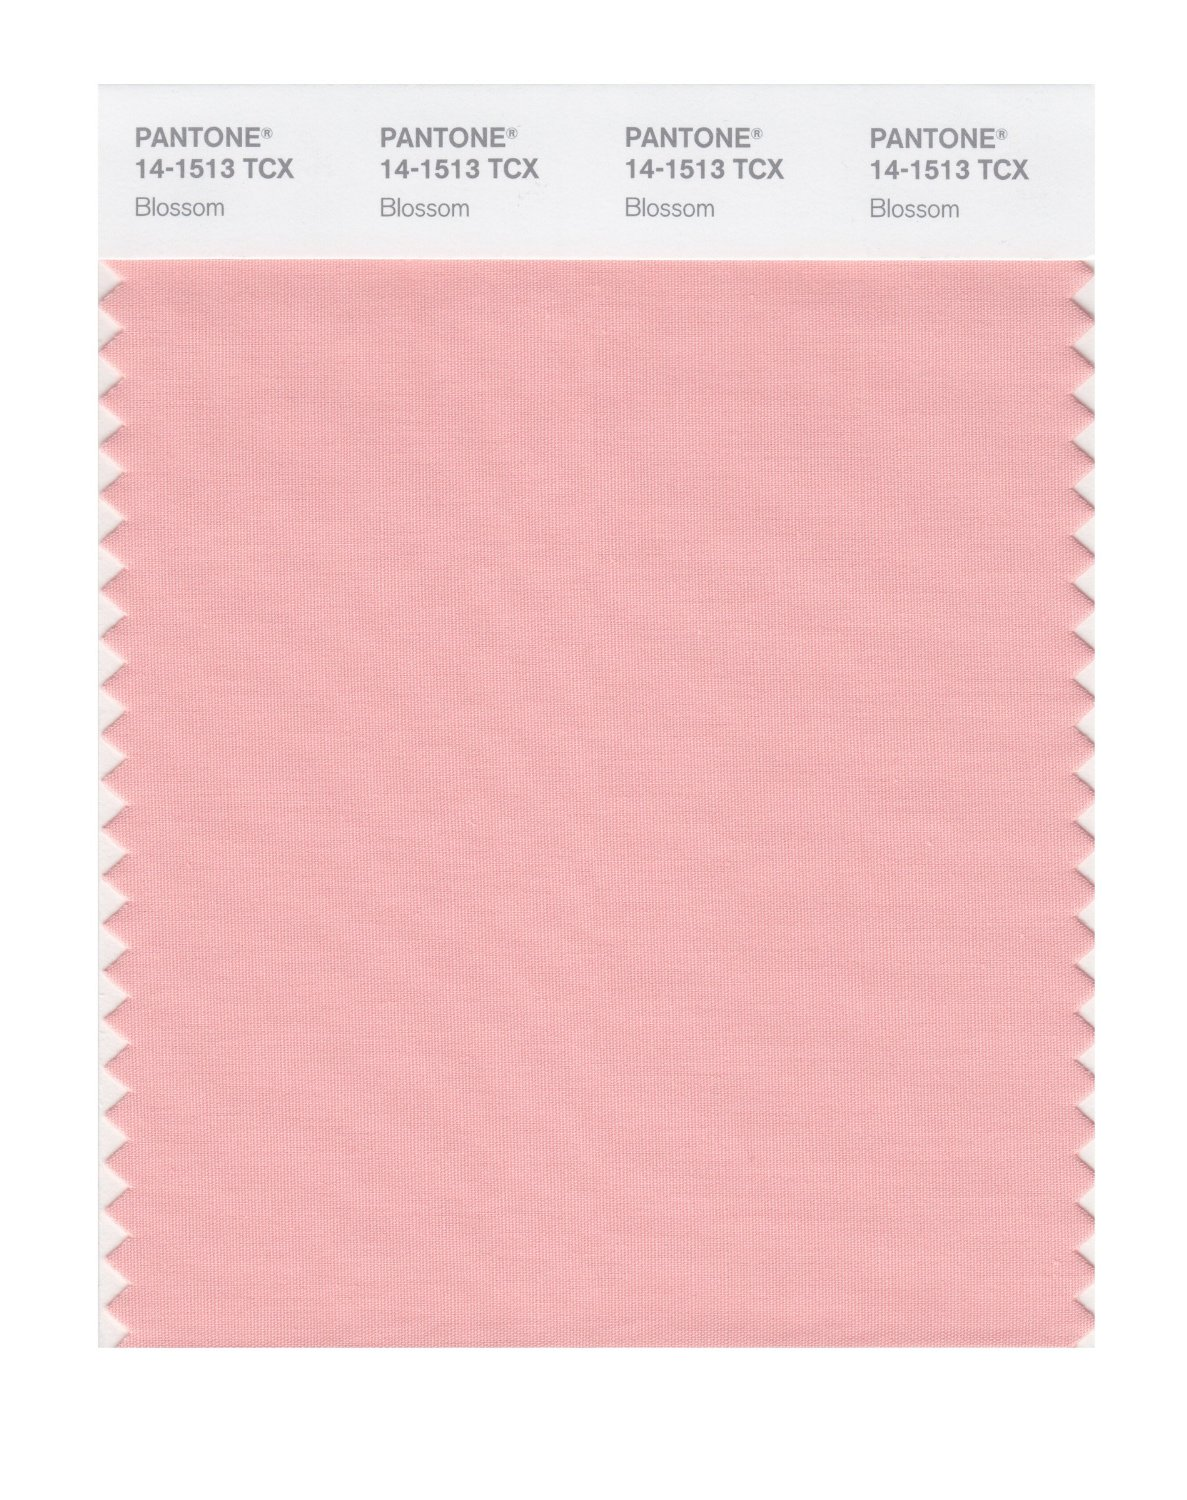 Pantone Smart Swatch 14-1513 Blossom